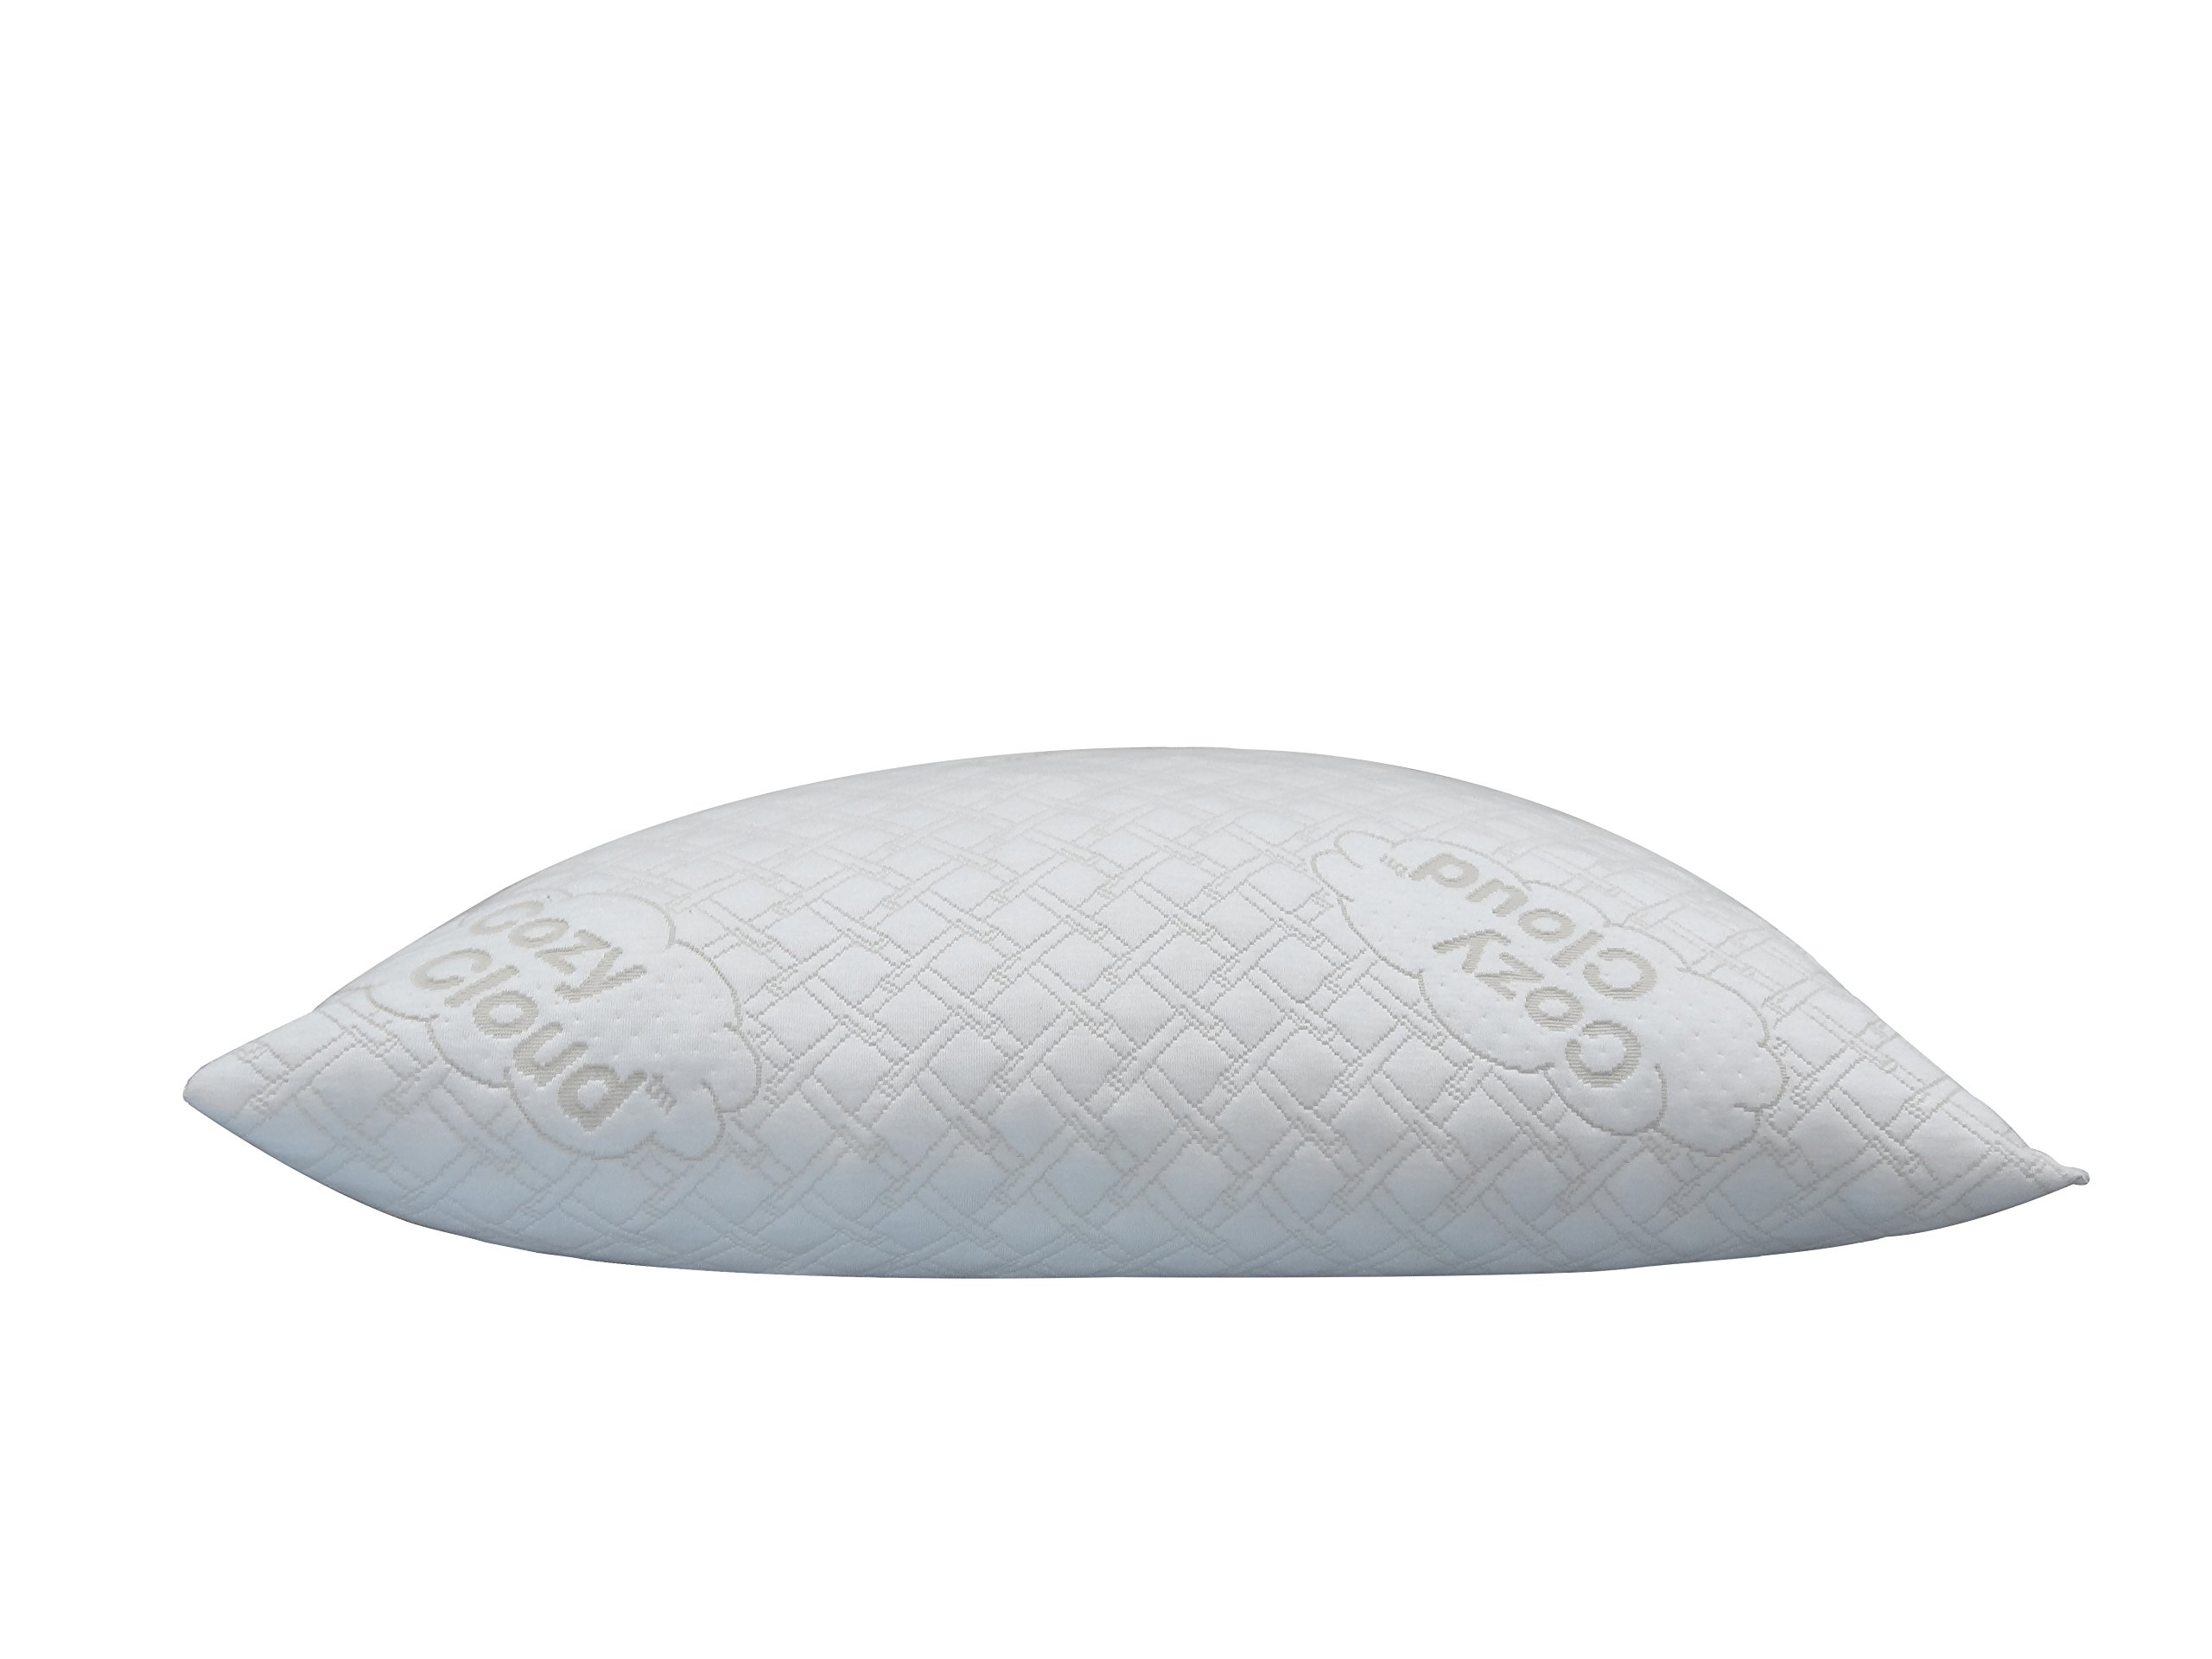 CozyCloud Bamboo Shredded Memory Foam Pillow, Queen